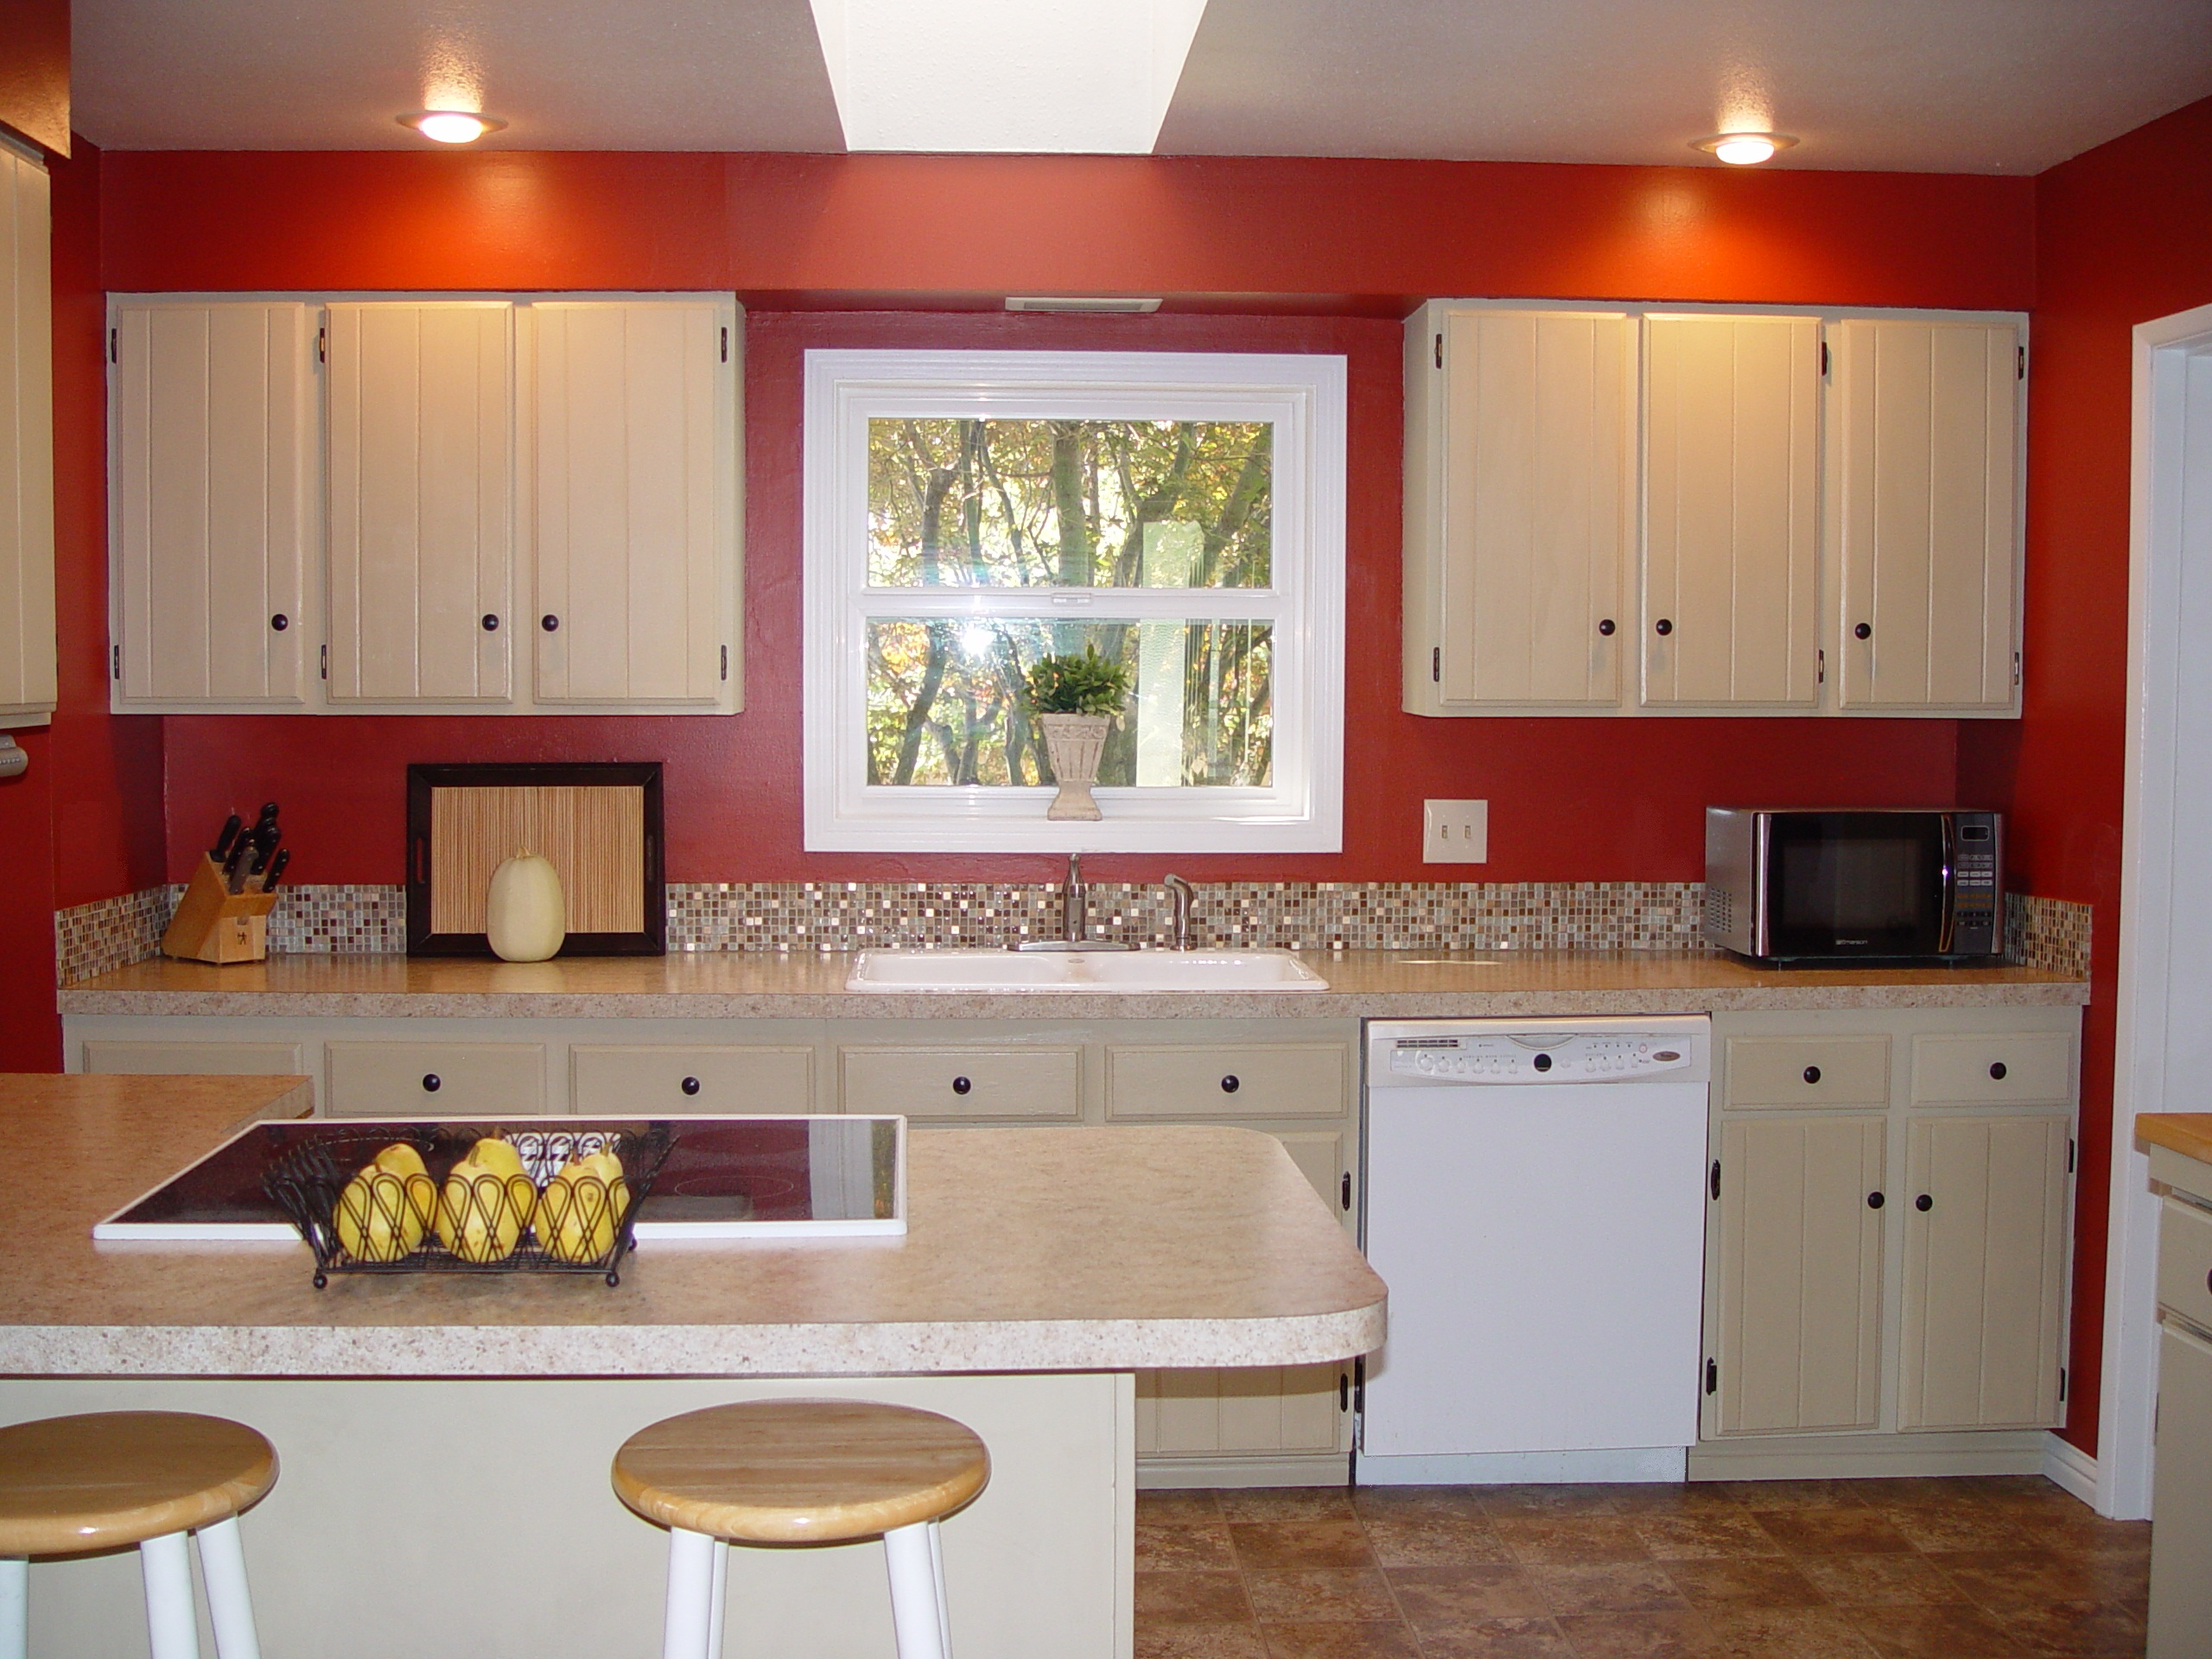 Economical RE Design Made Possible With Salvage Cabinets